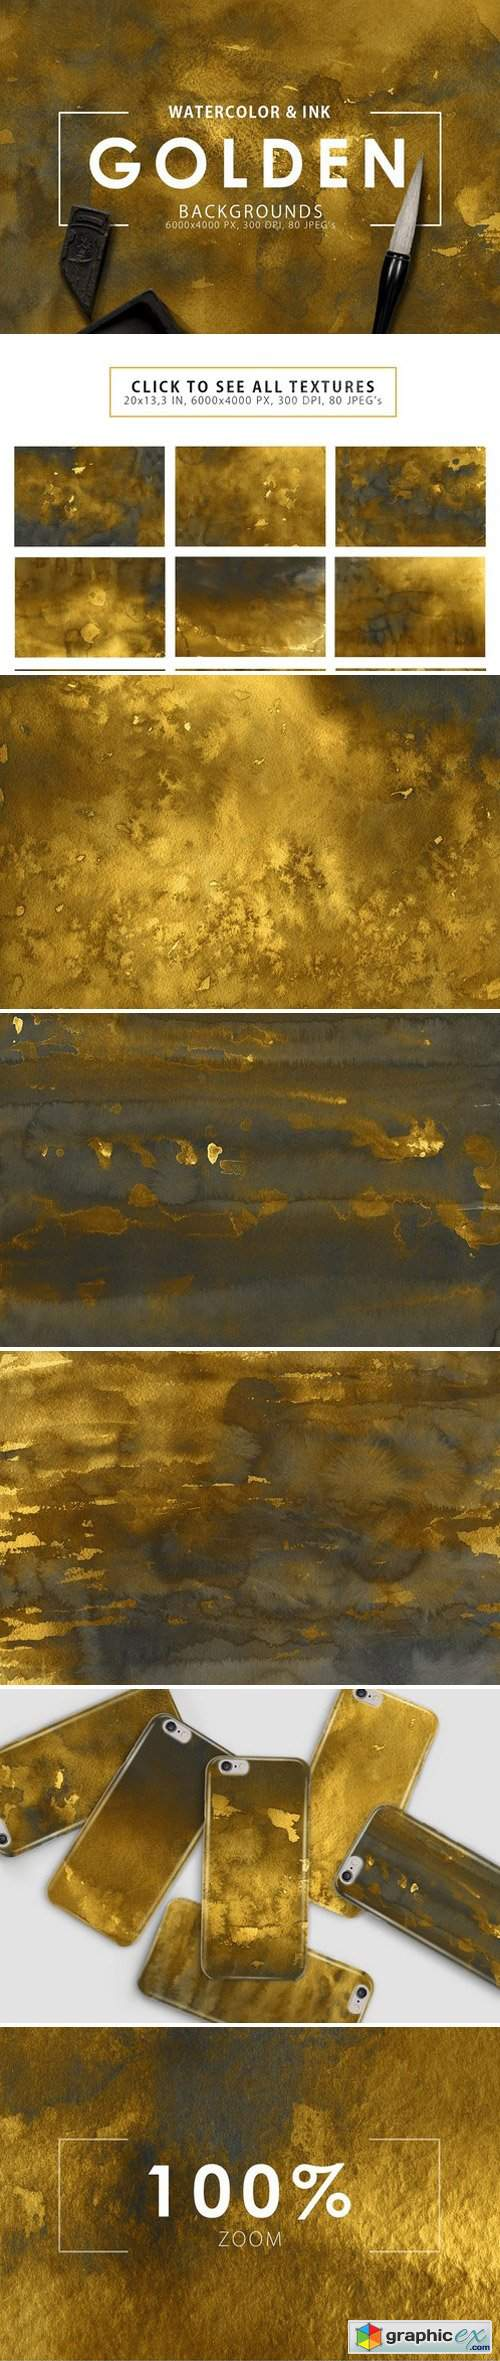 80 Golden Watercolor & Ink Backgrounds